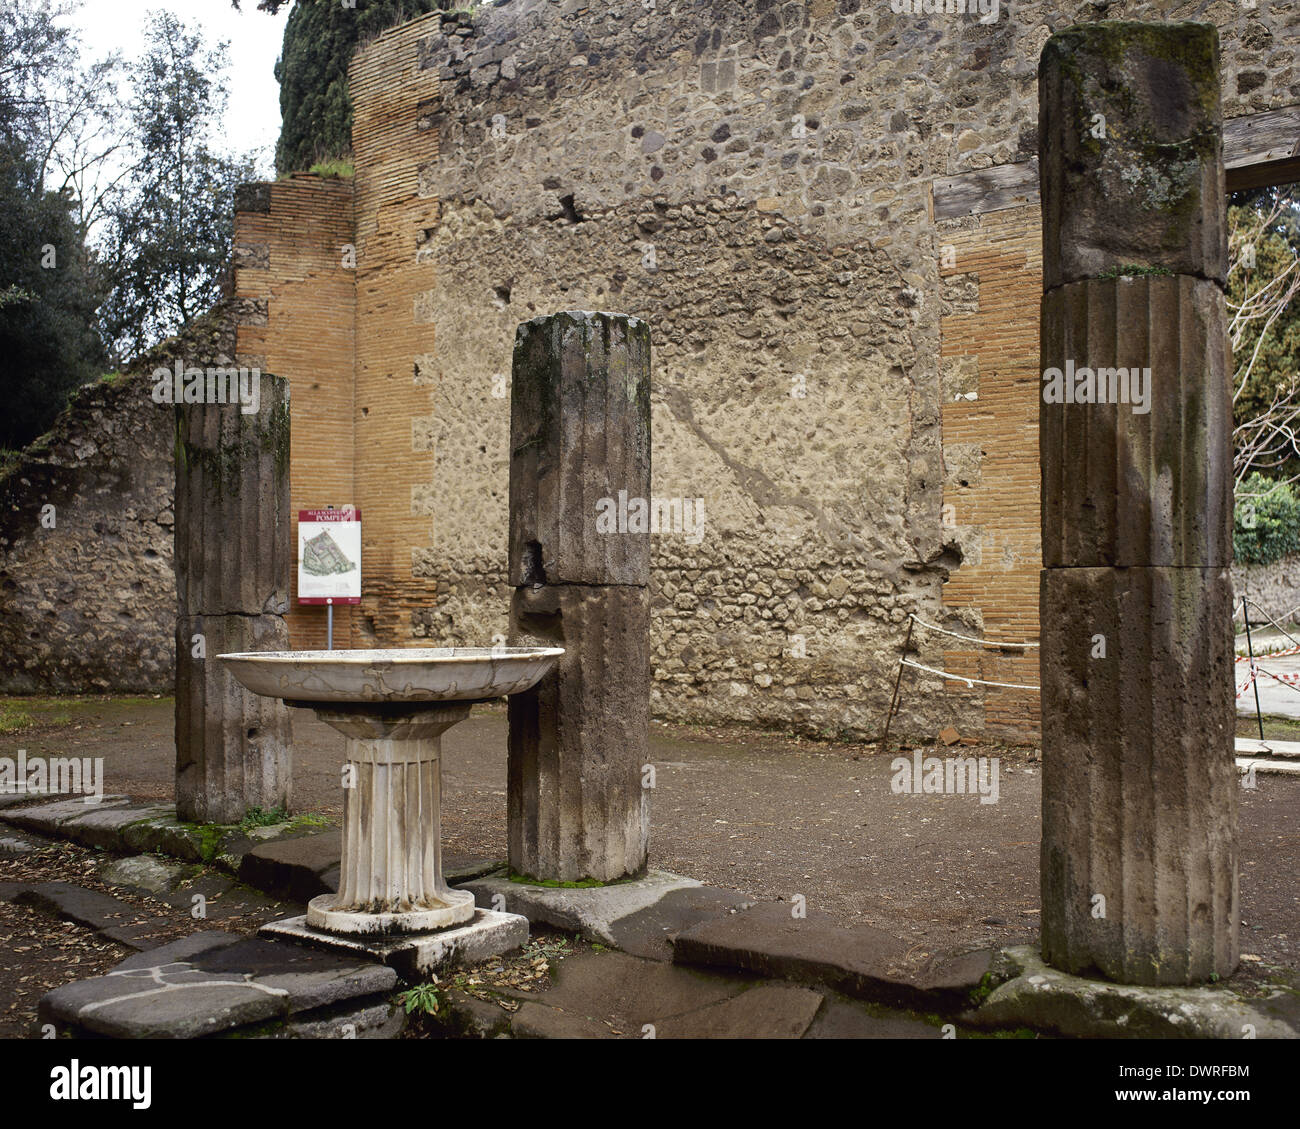 Italy. Pompeii. Triangular Forum. Fluted columns inside the square, Doric style. - Stock Image